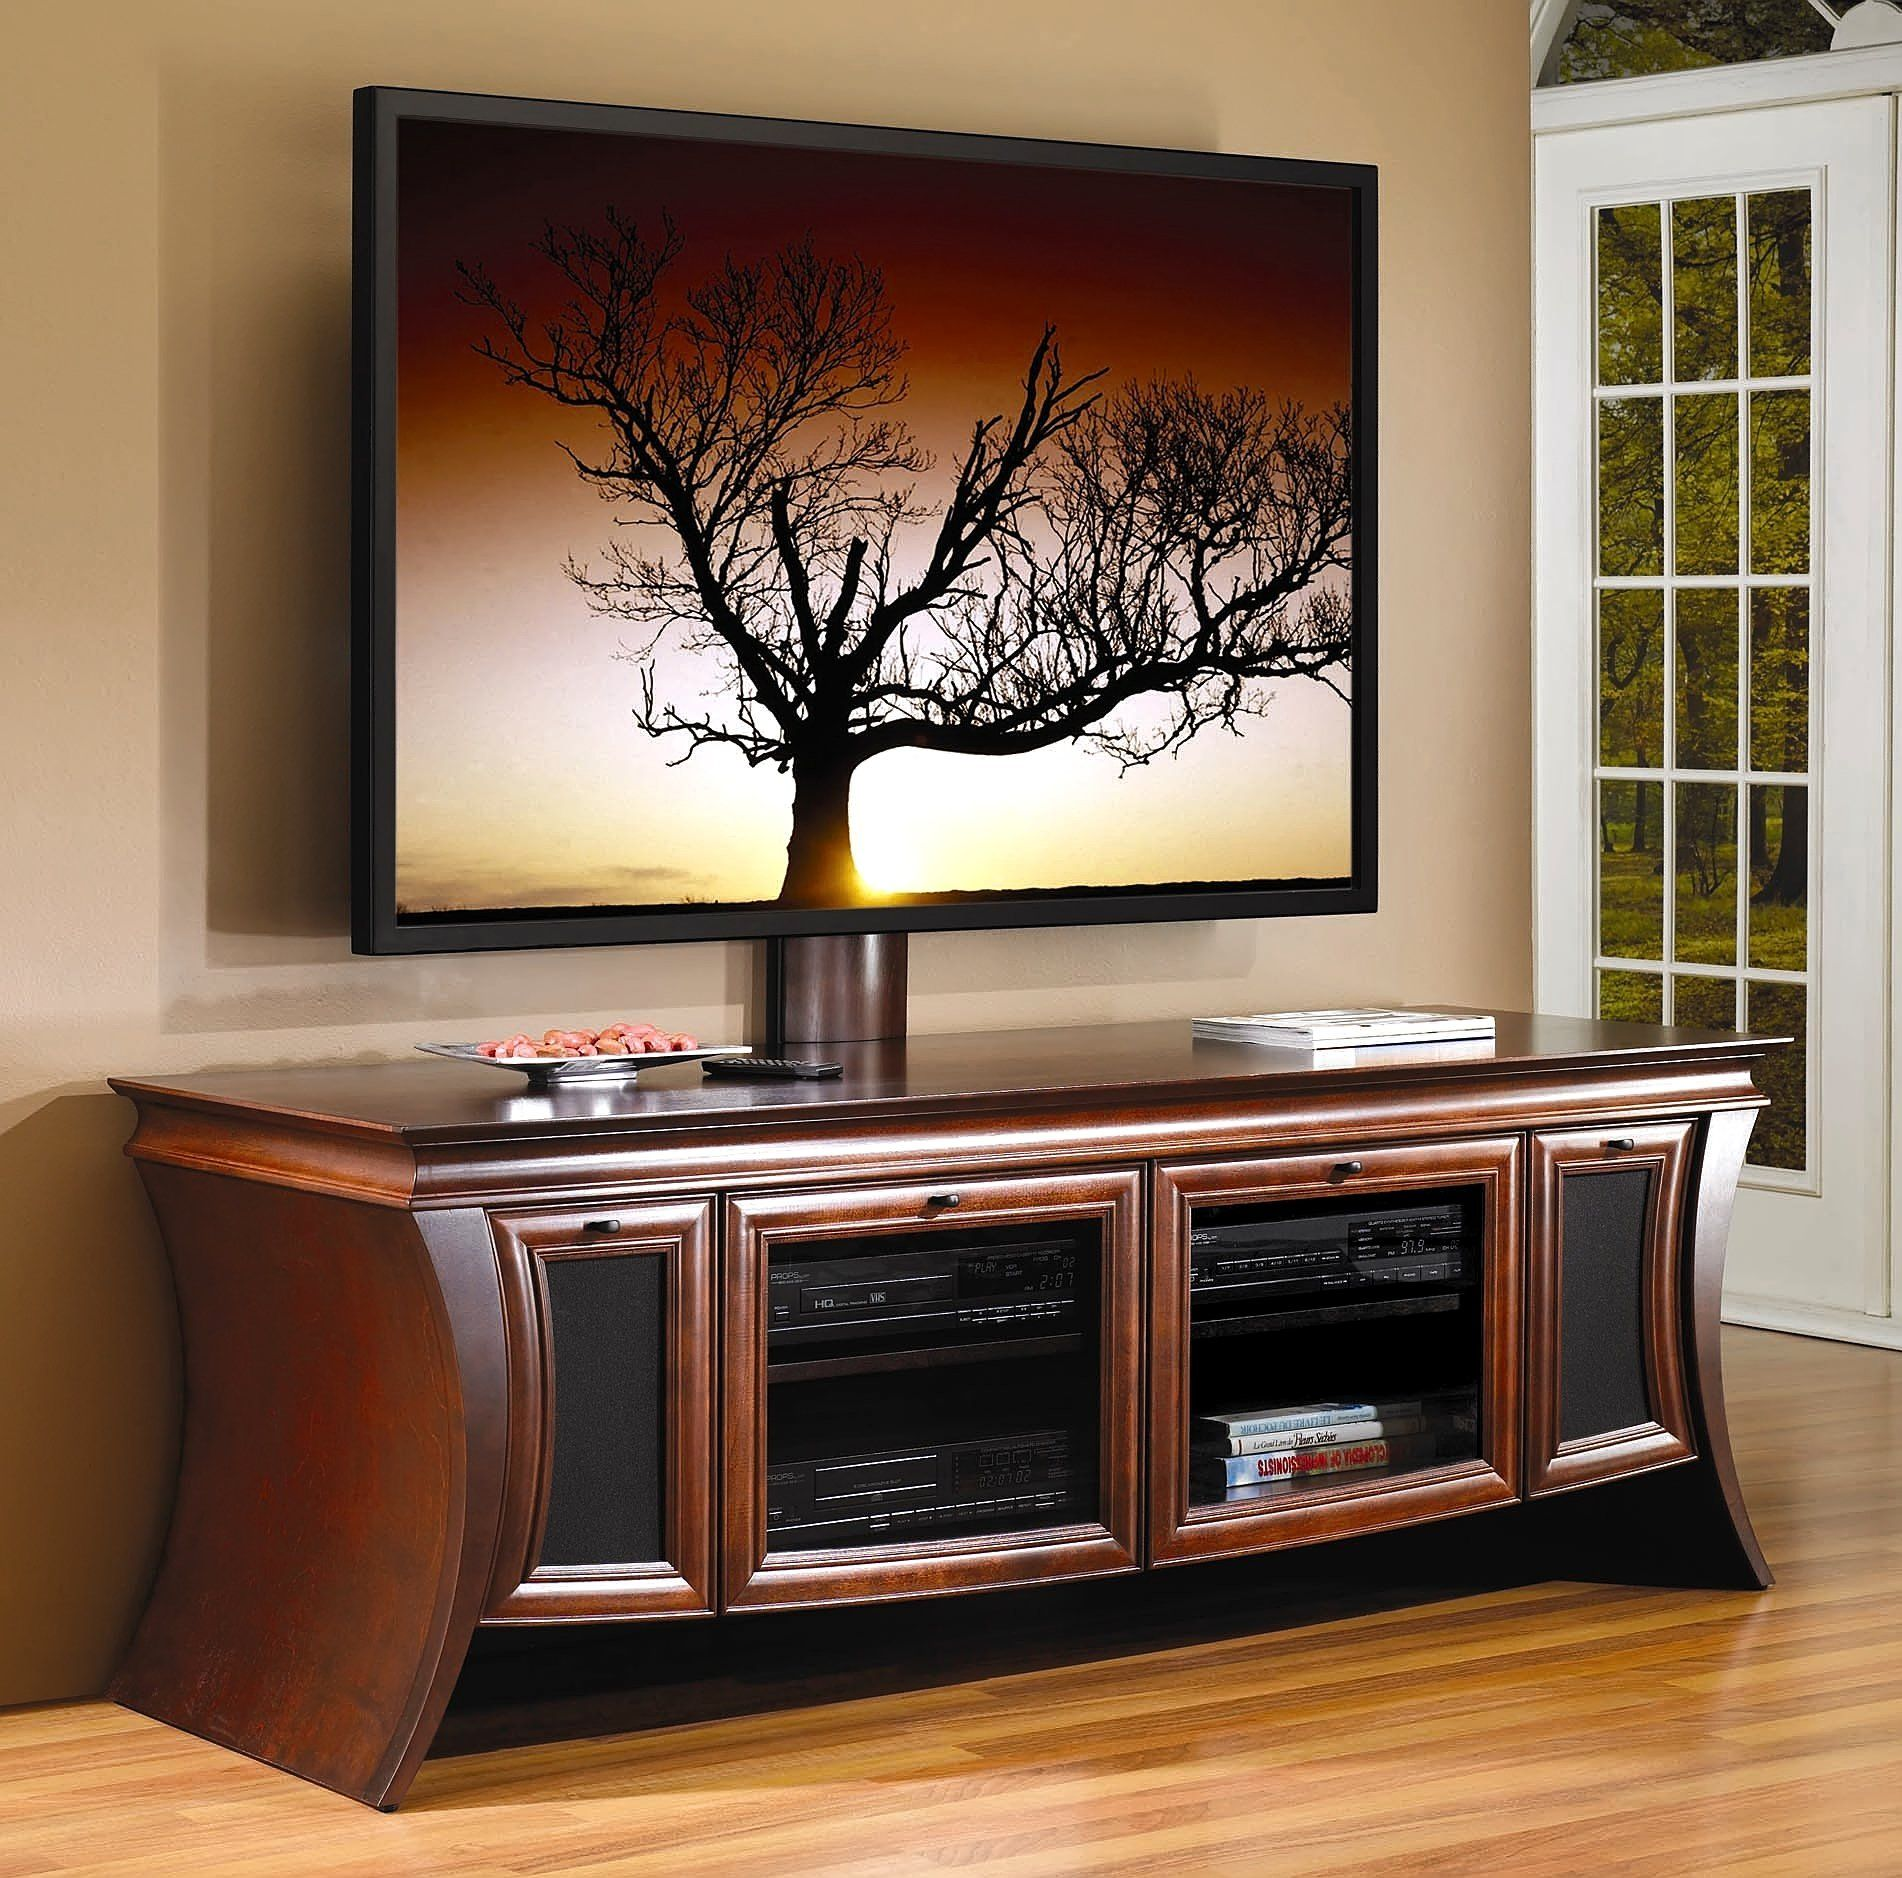 Wood flat screen curved tv stands photo of entertainment center wood flat screen curved tv stands photo of entertainment center w flat screen tv panel sciox Image collections